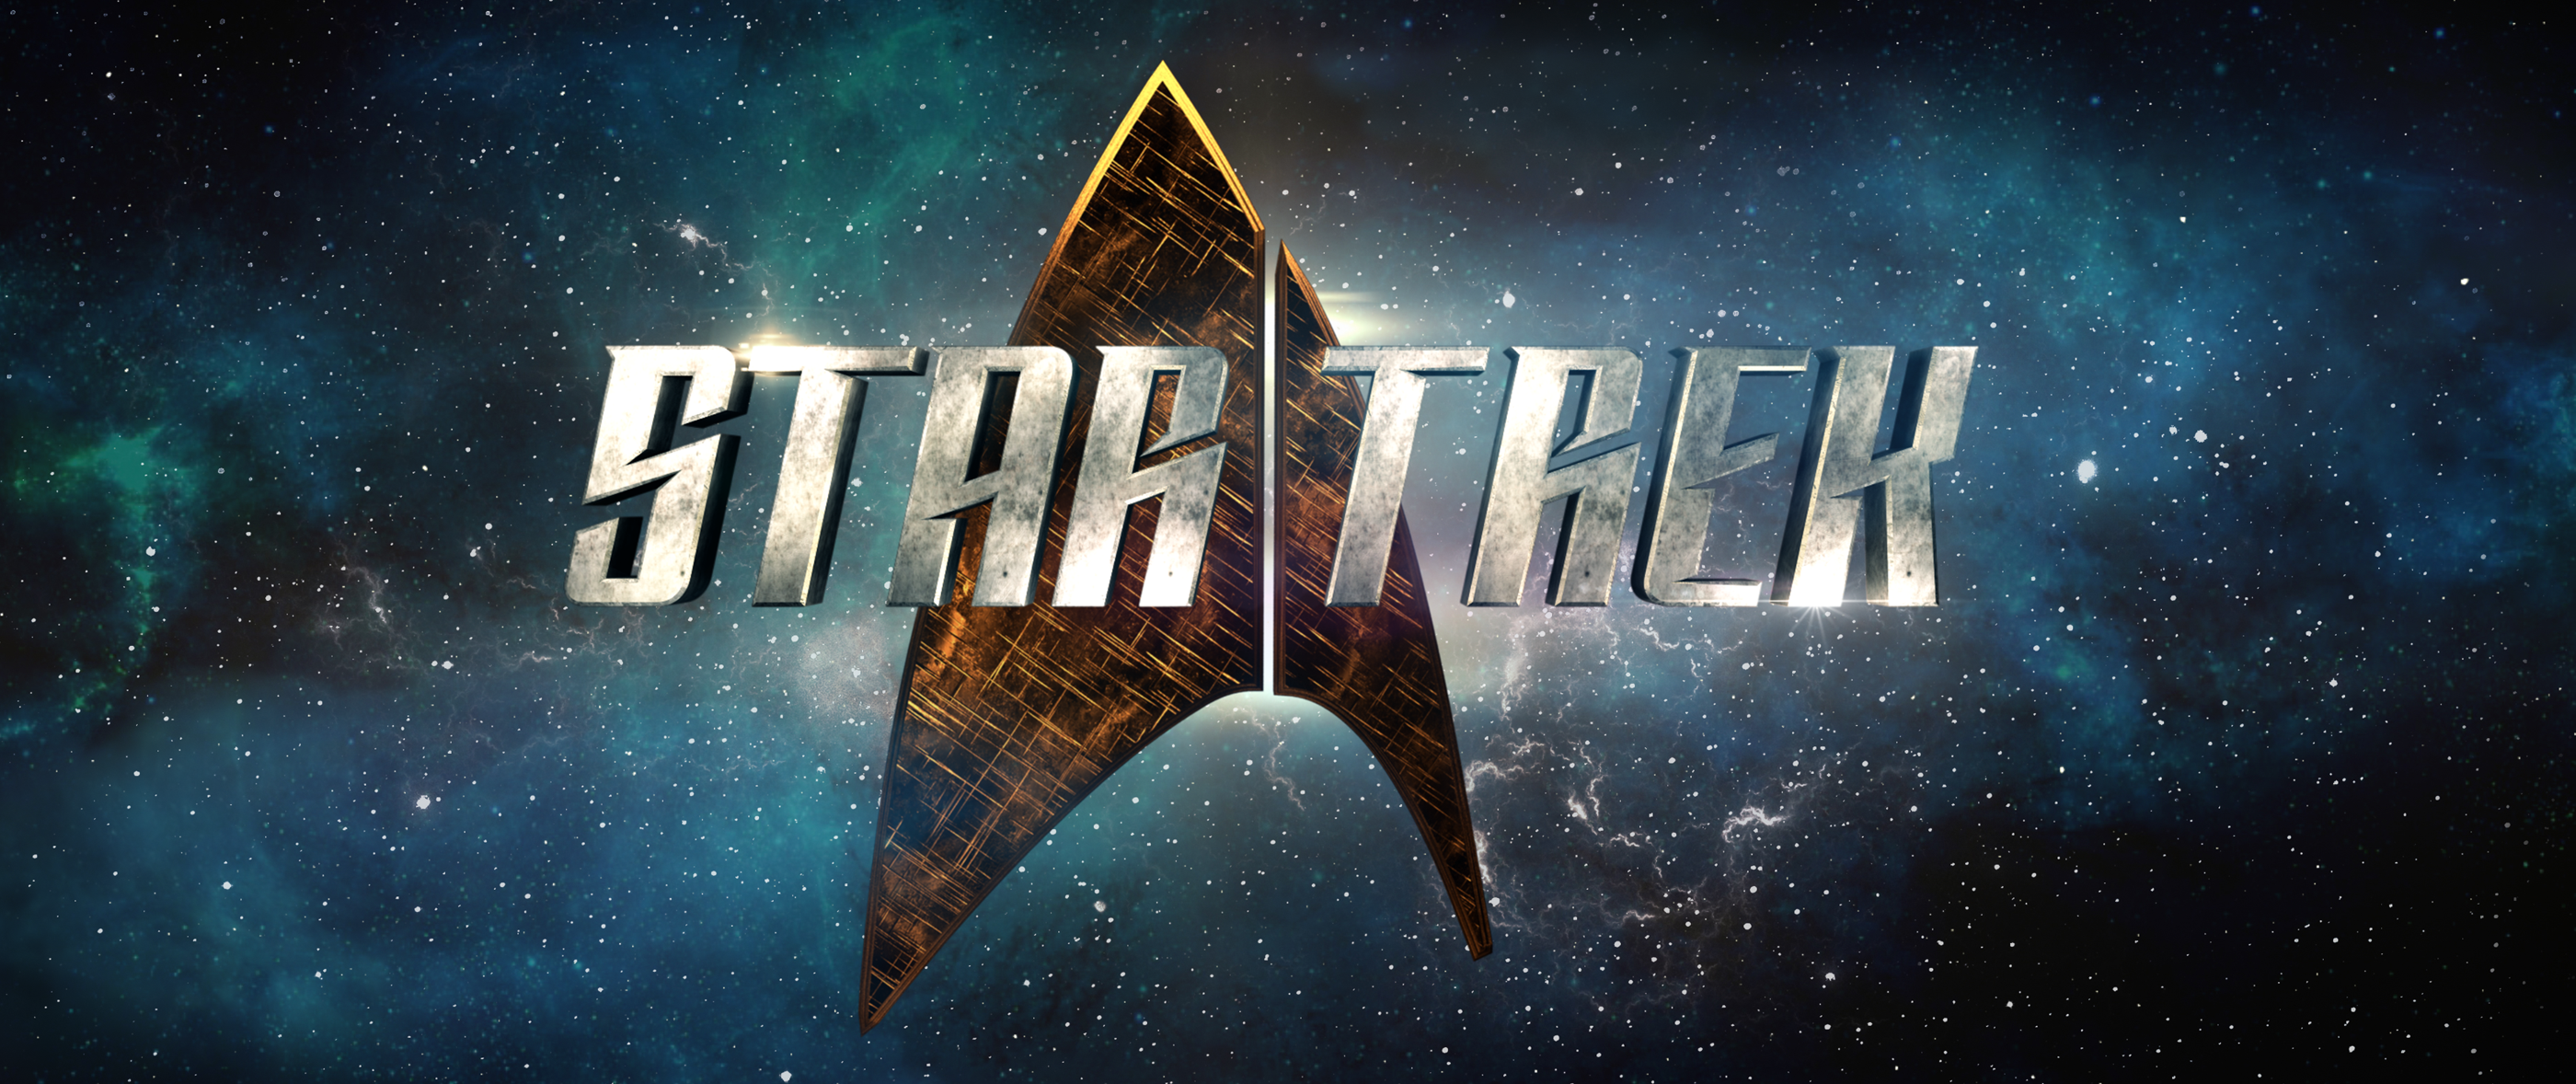 New Star Trek series logo